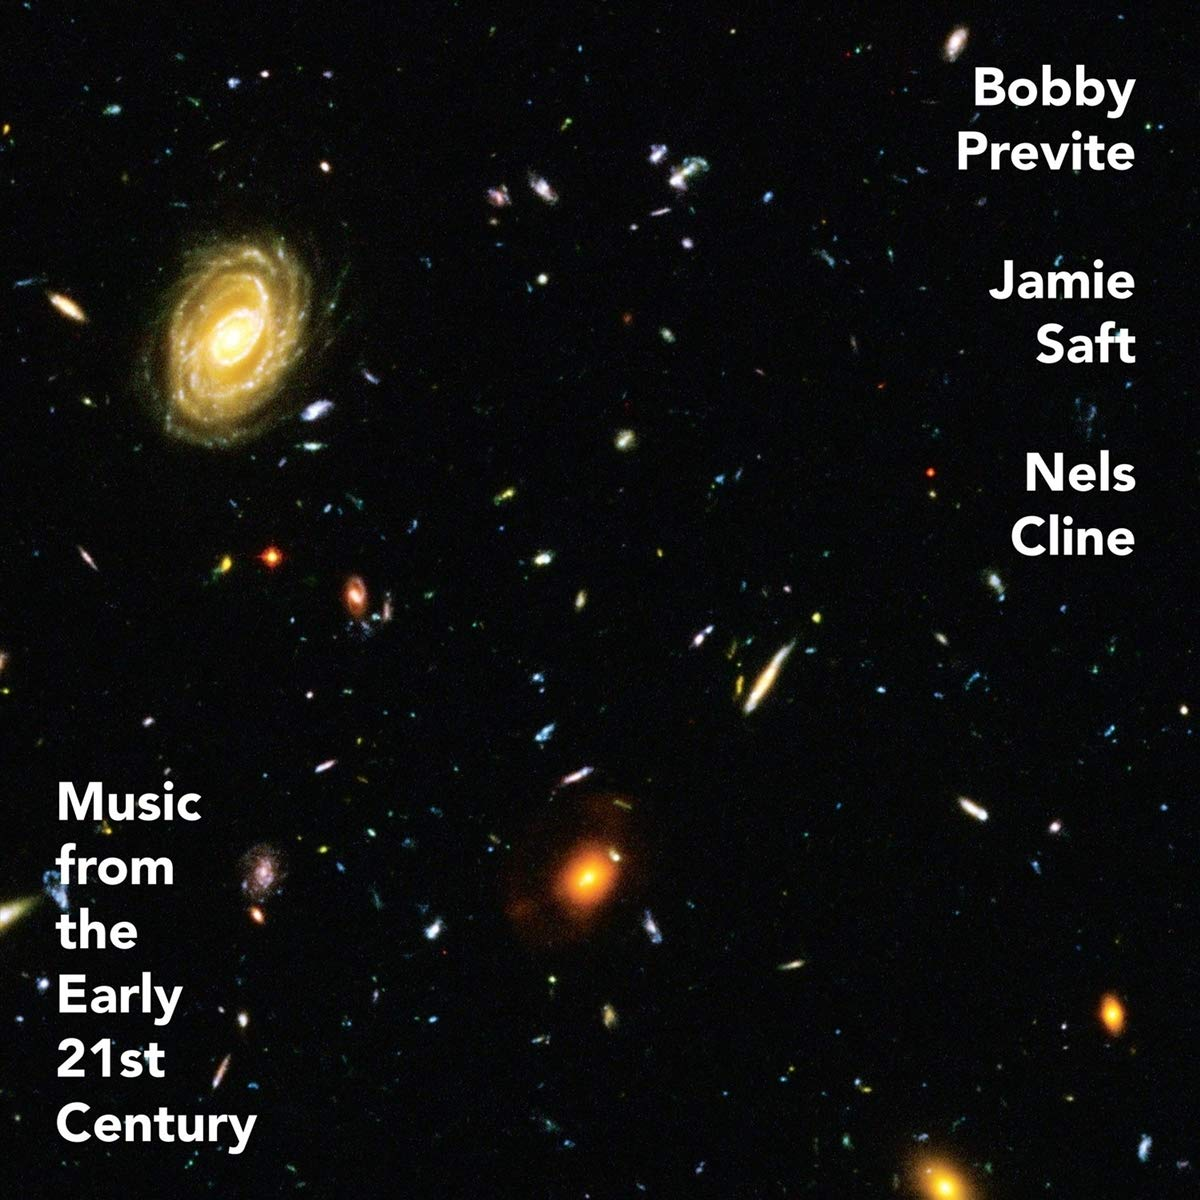 BOBBY PREVITE - Bobby Previte , Jamie Saft , Nels Cline : Music From The Early 21st Century cover